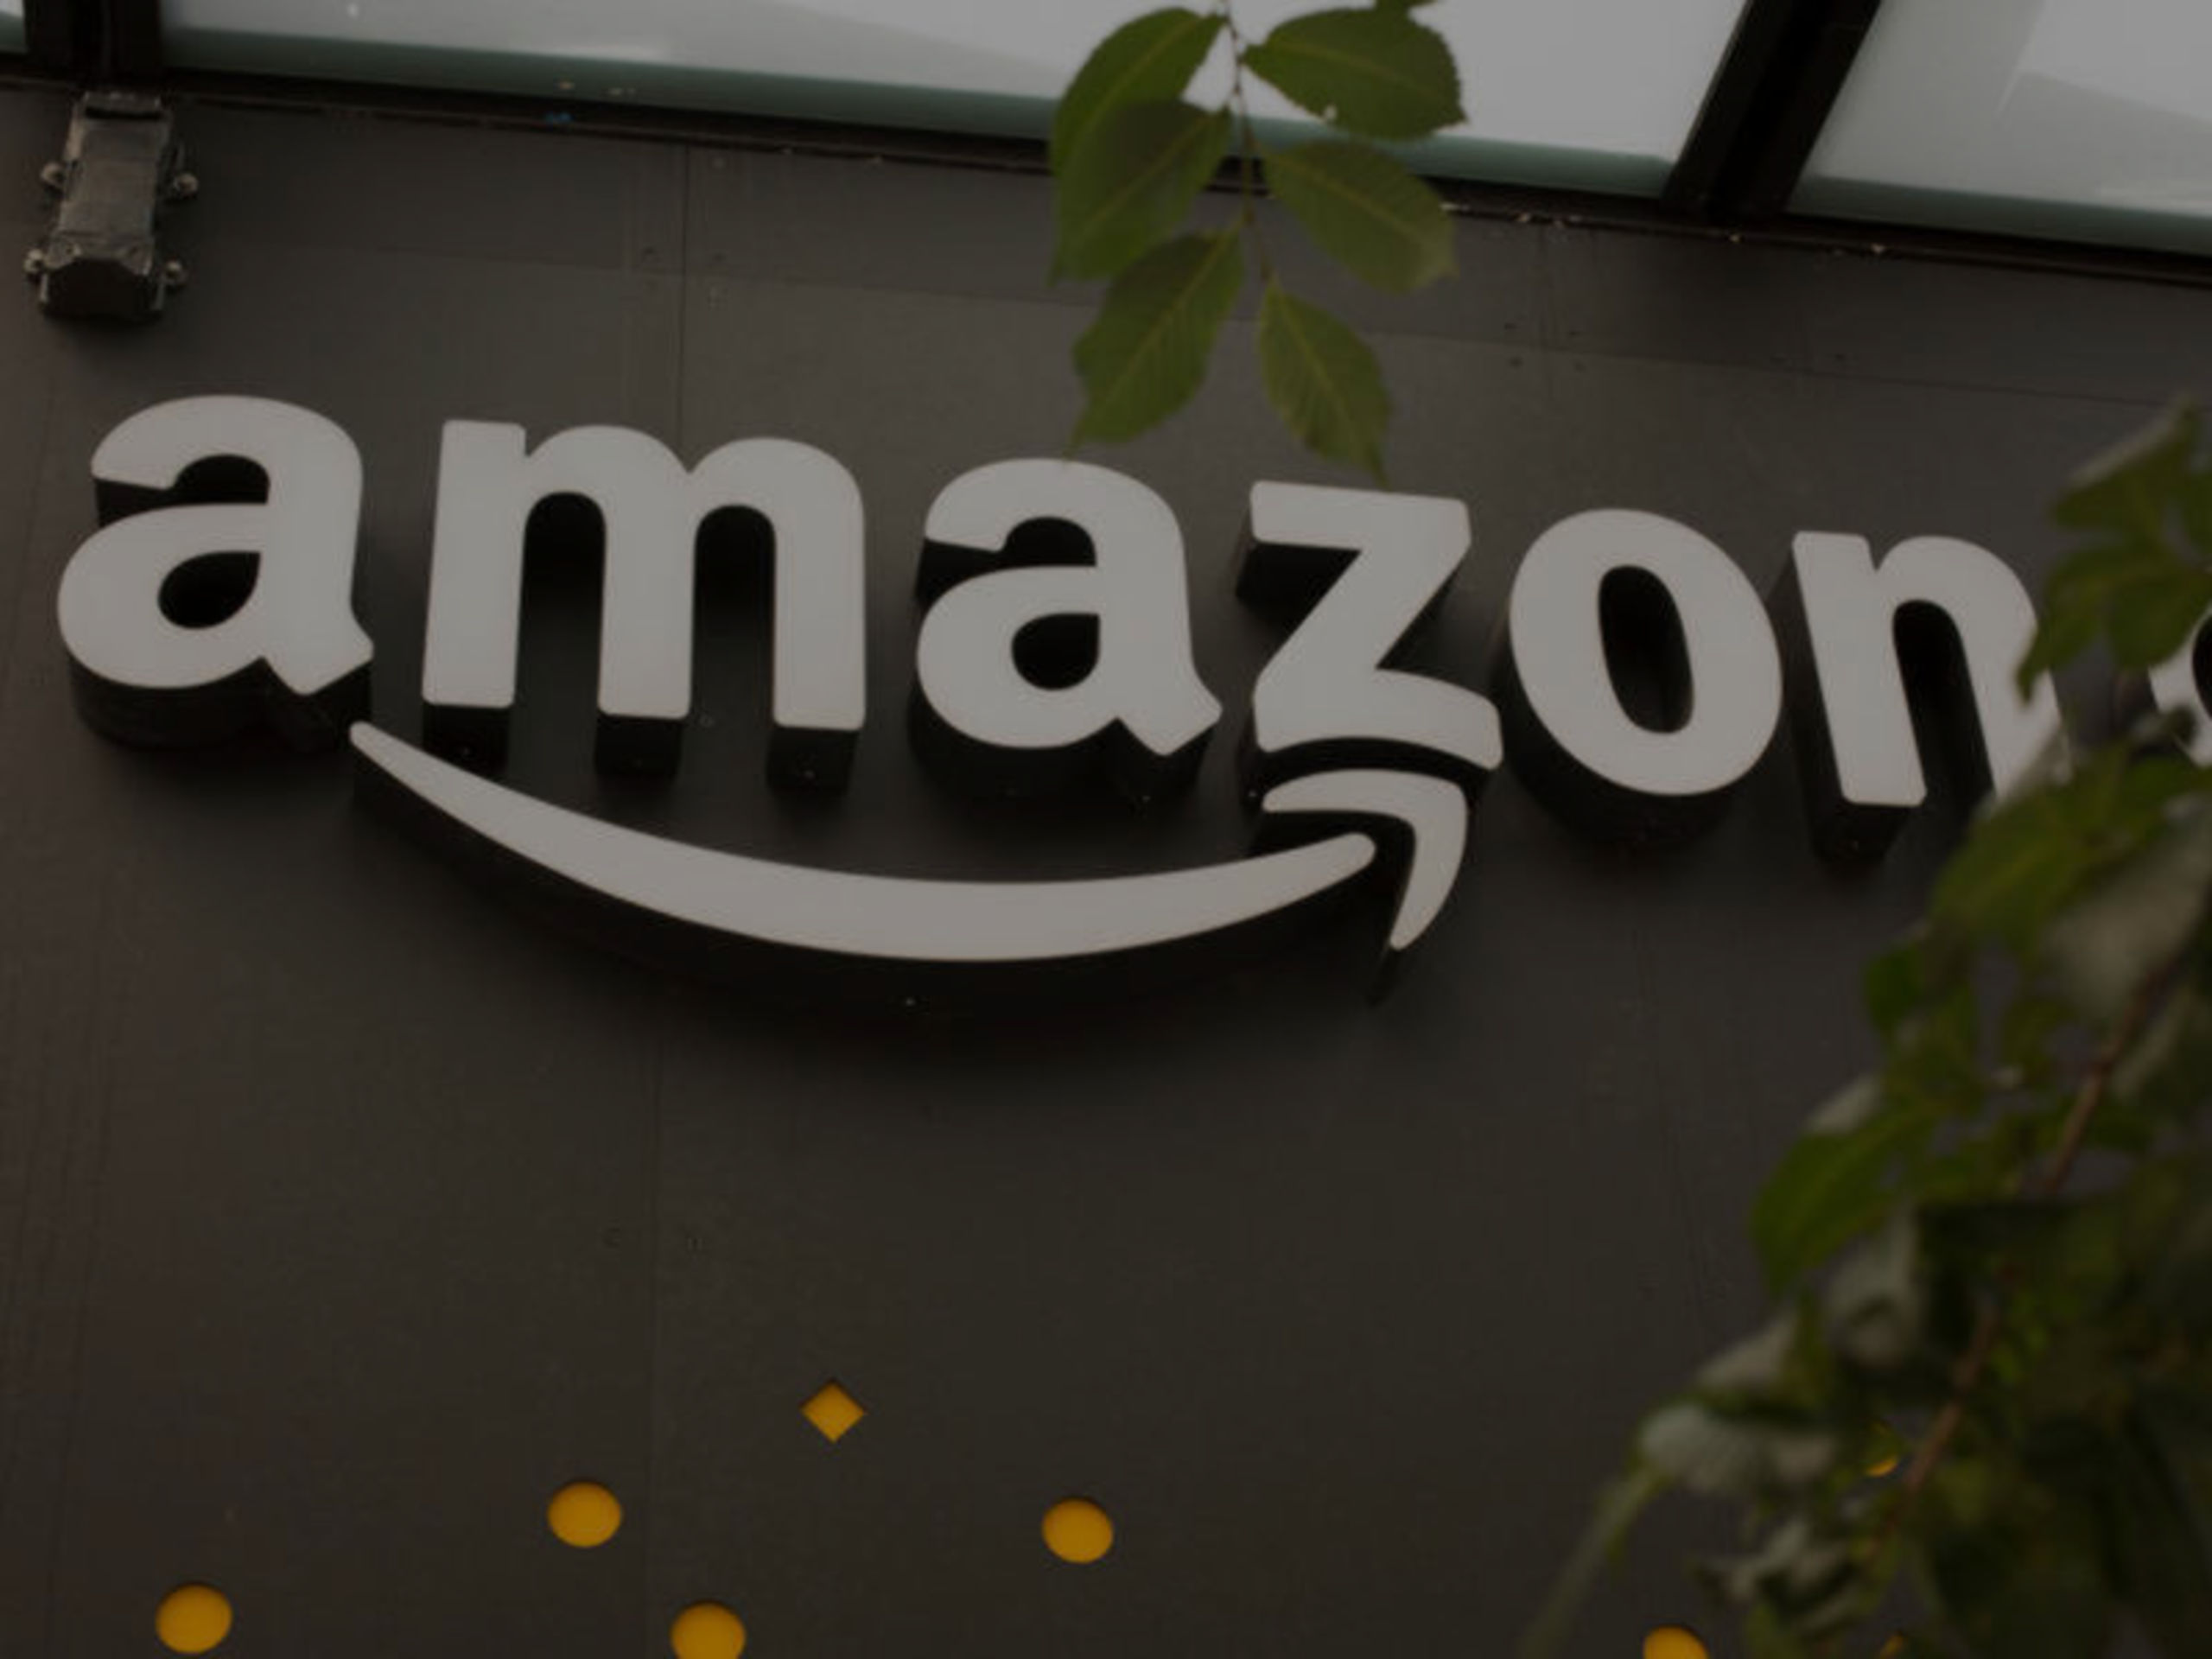 Austin, Dallas Seen As Top Contenders For Amazon HQ2